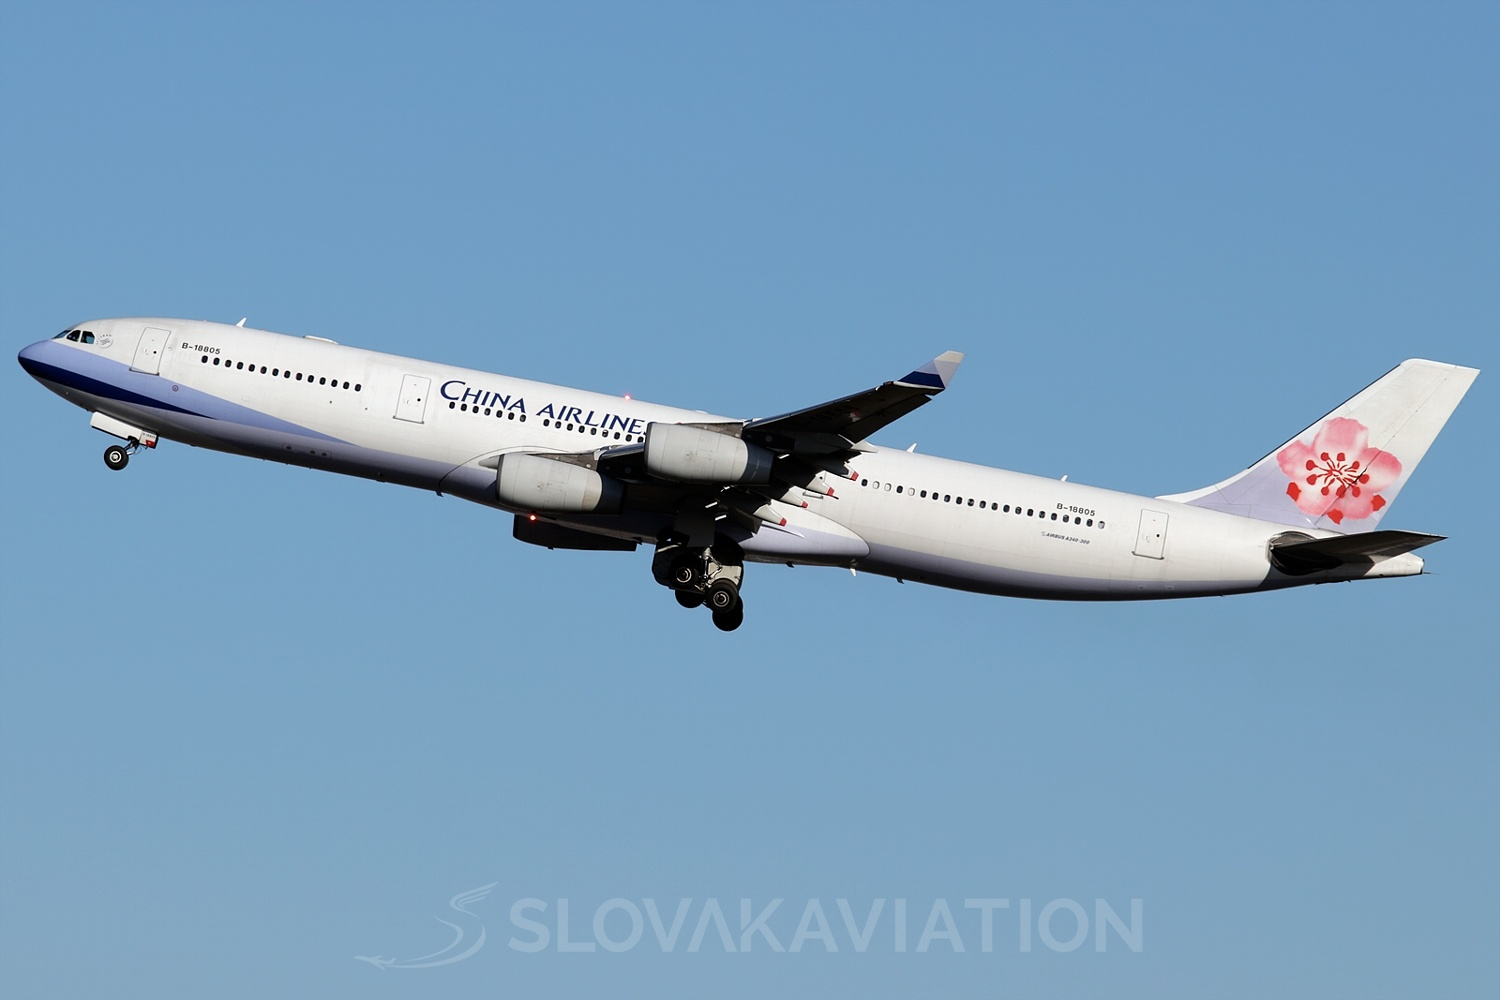 China Airlines Airbus A340-300 B-18805